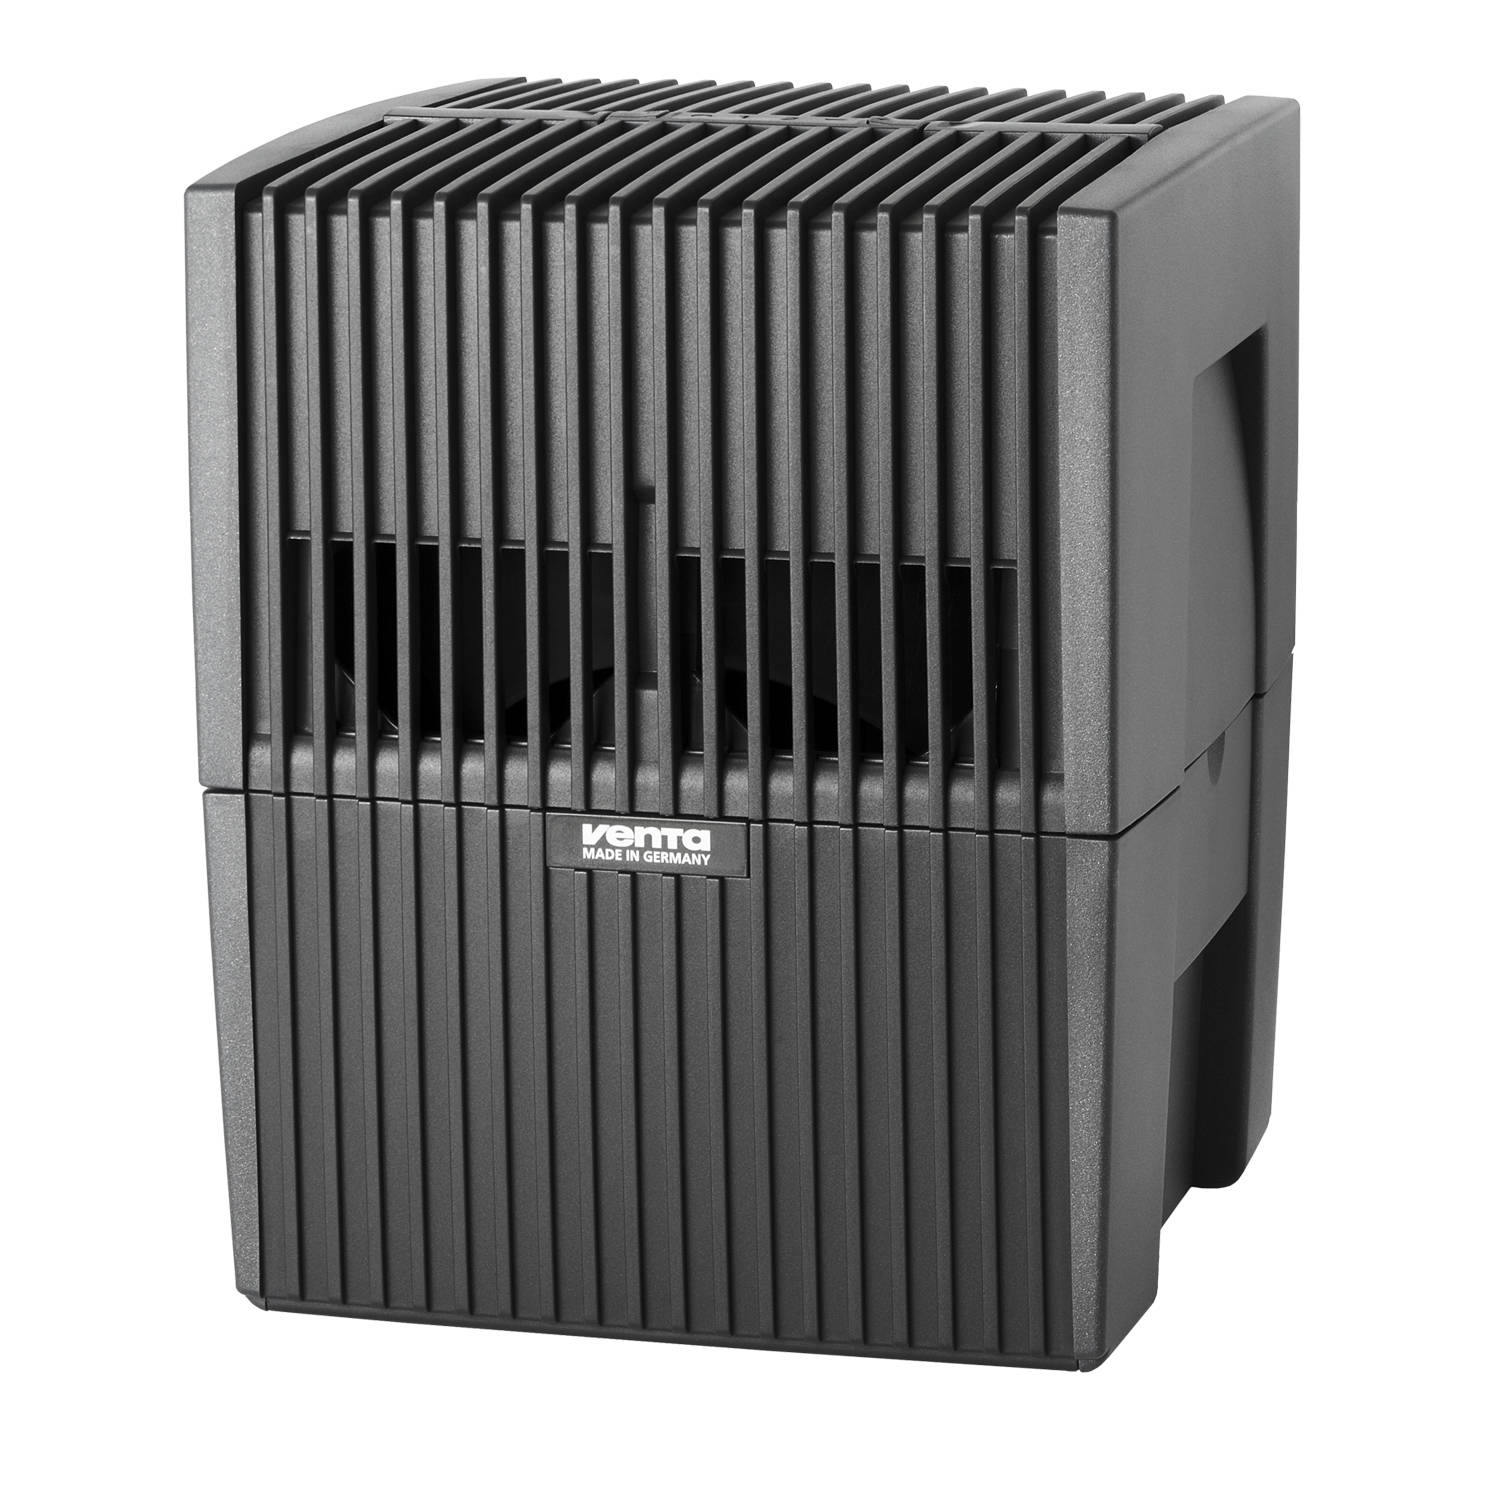 Humidifier   Air Purifier for Life 800 Sq. Ft. Walmart.com #646667